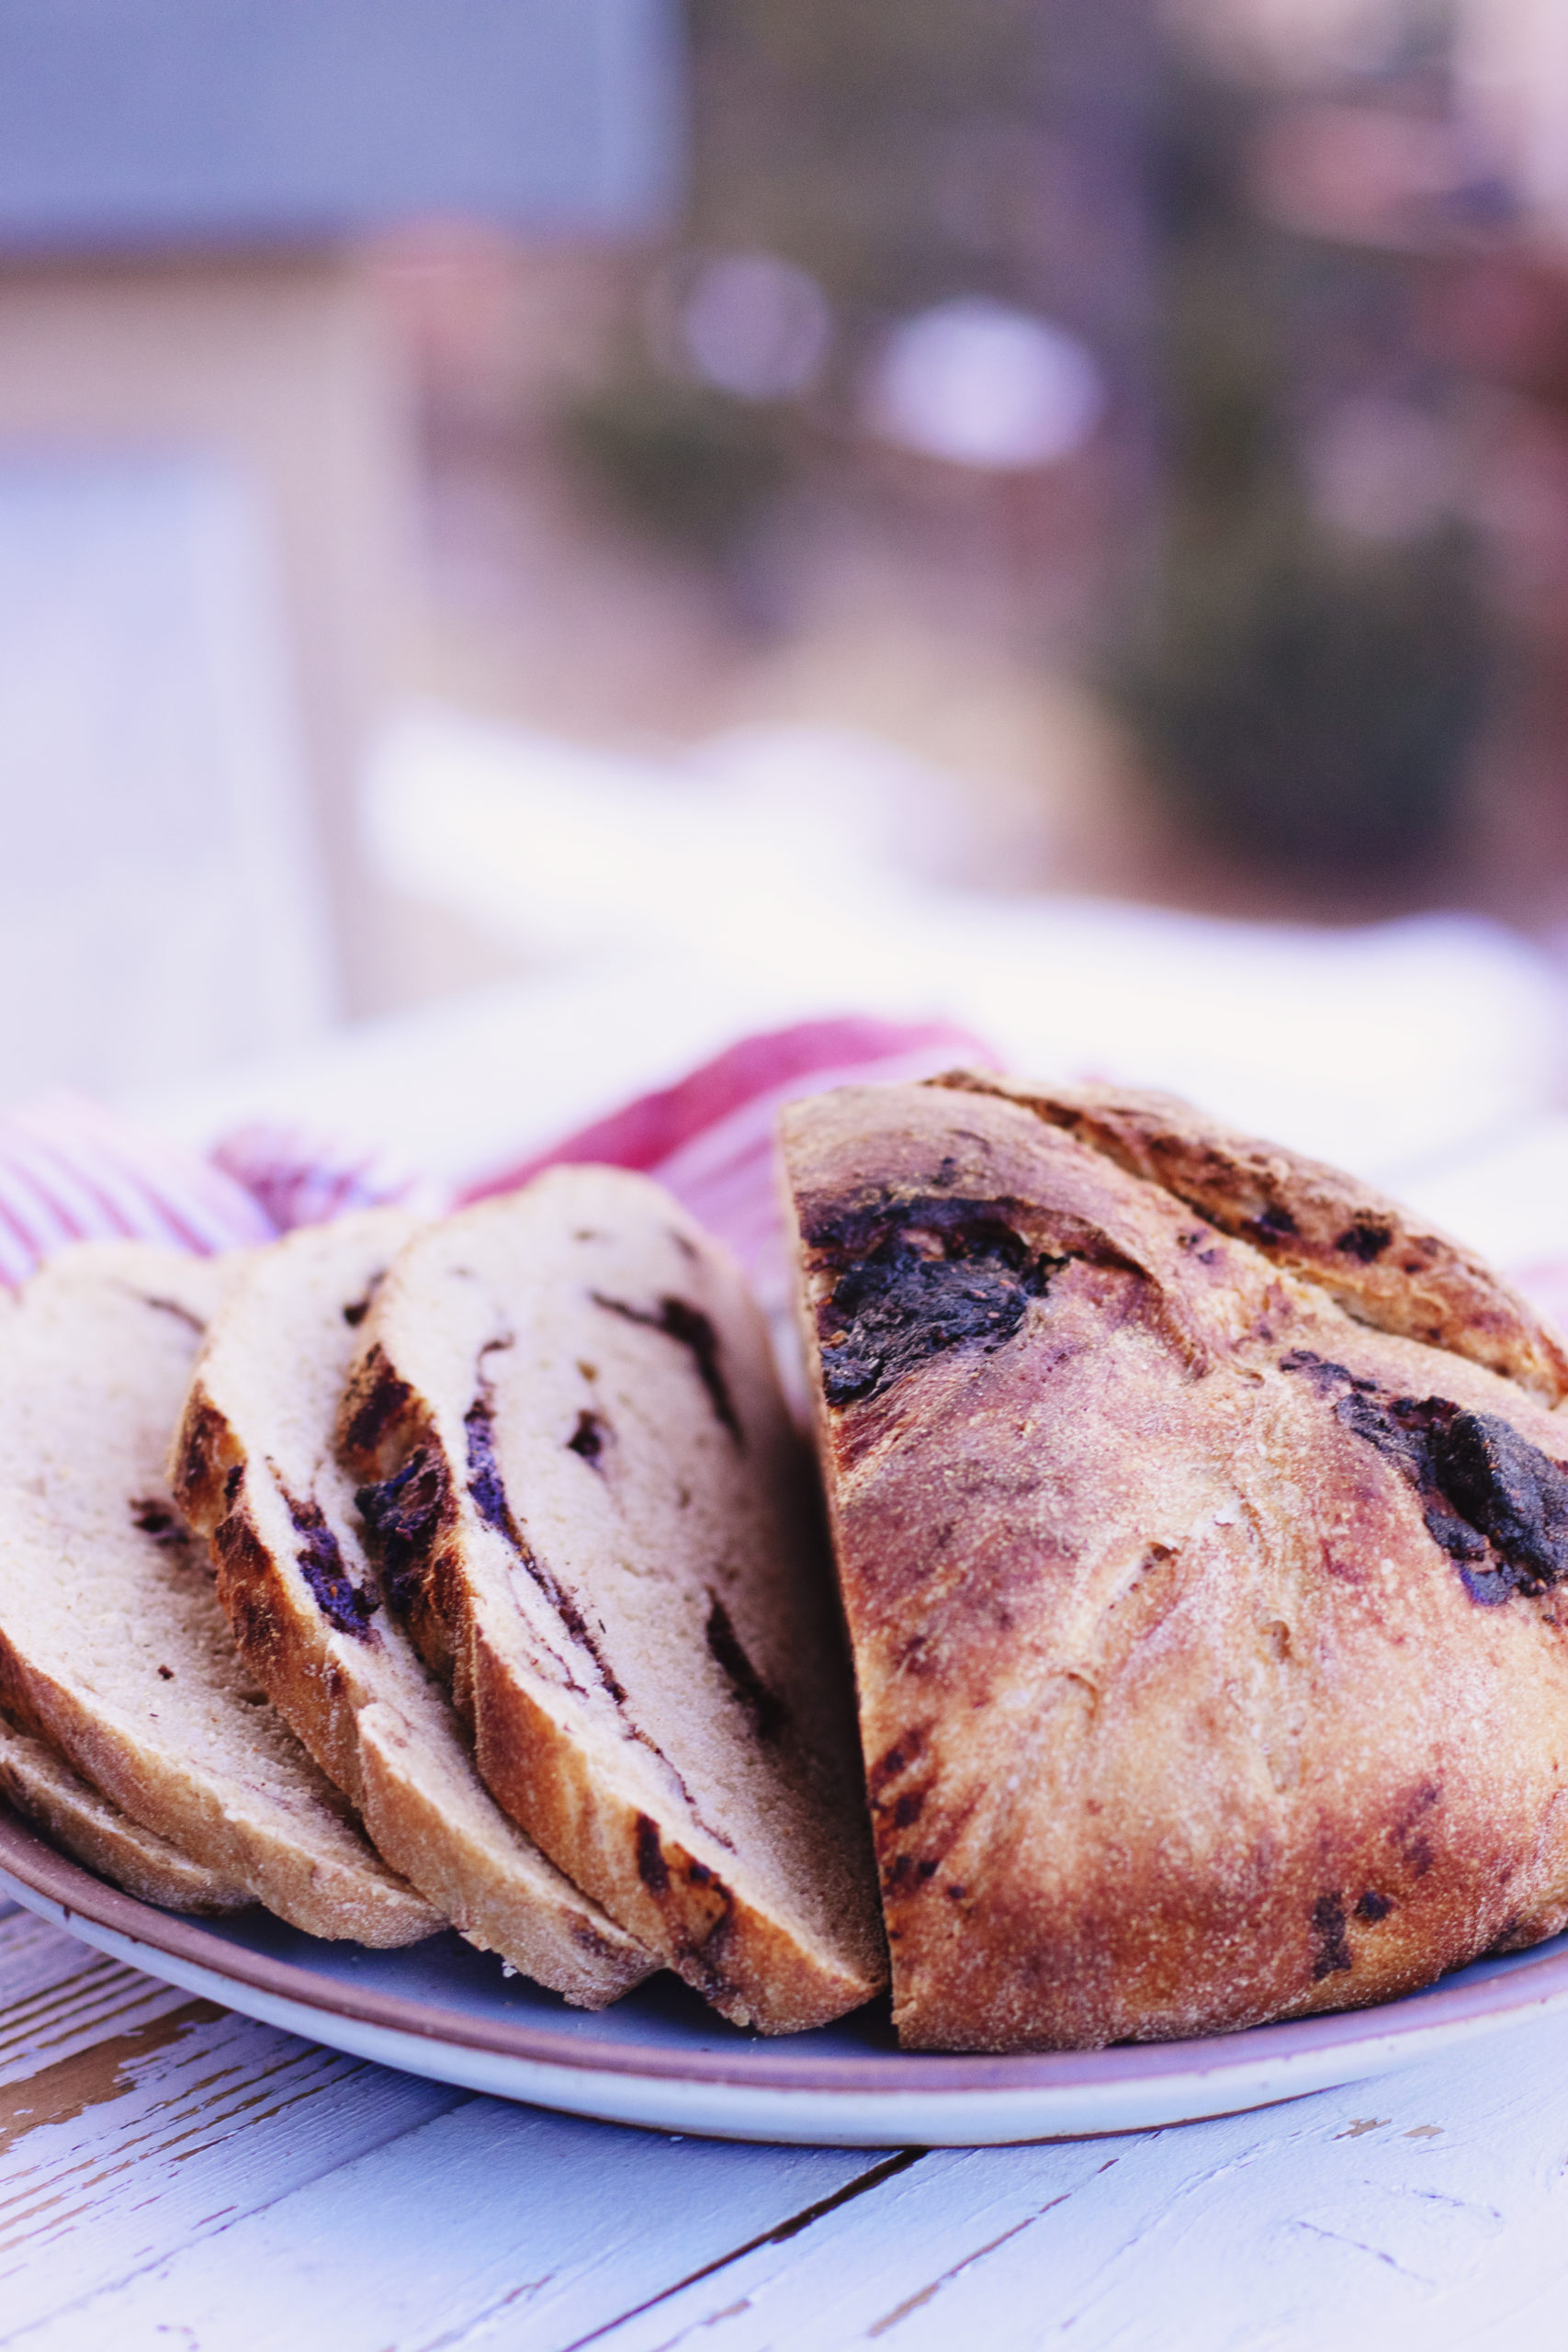 sliced chocolate chunk sourdough bread